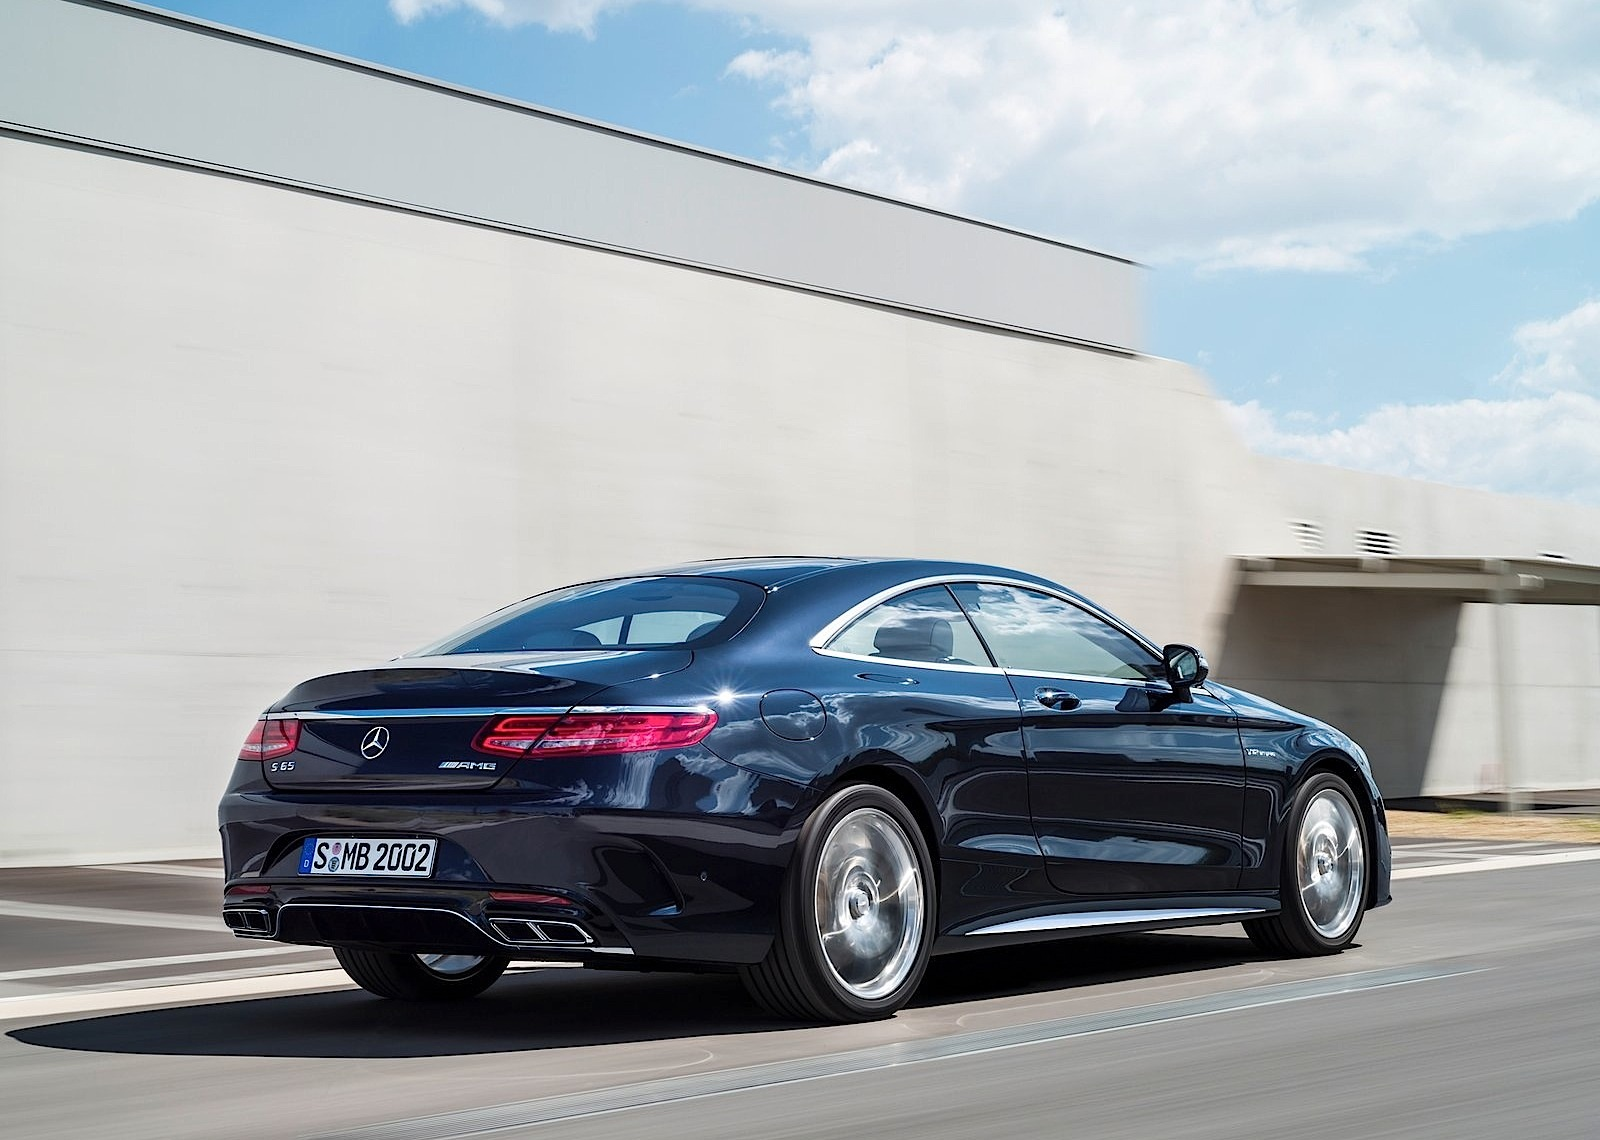 Mercedes benz s 65 amg coupe 2014 2015 2016 for 2014 mercedes benz s65 amg coupe